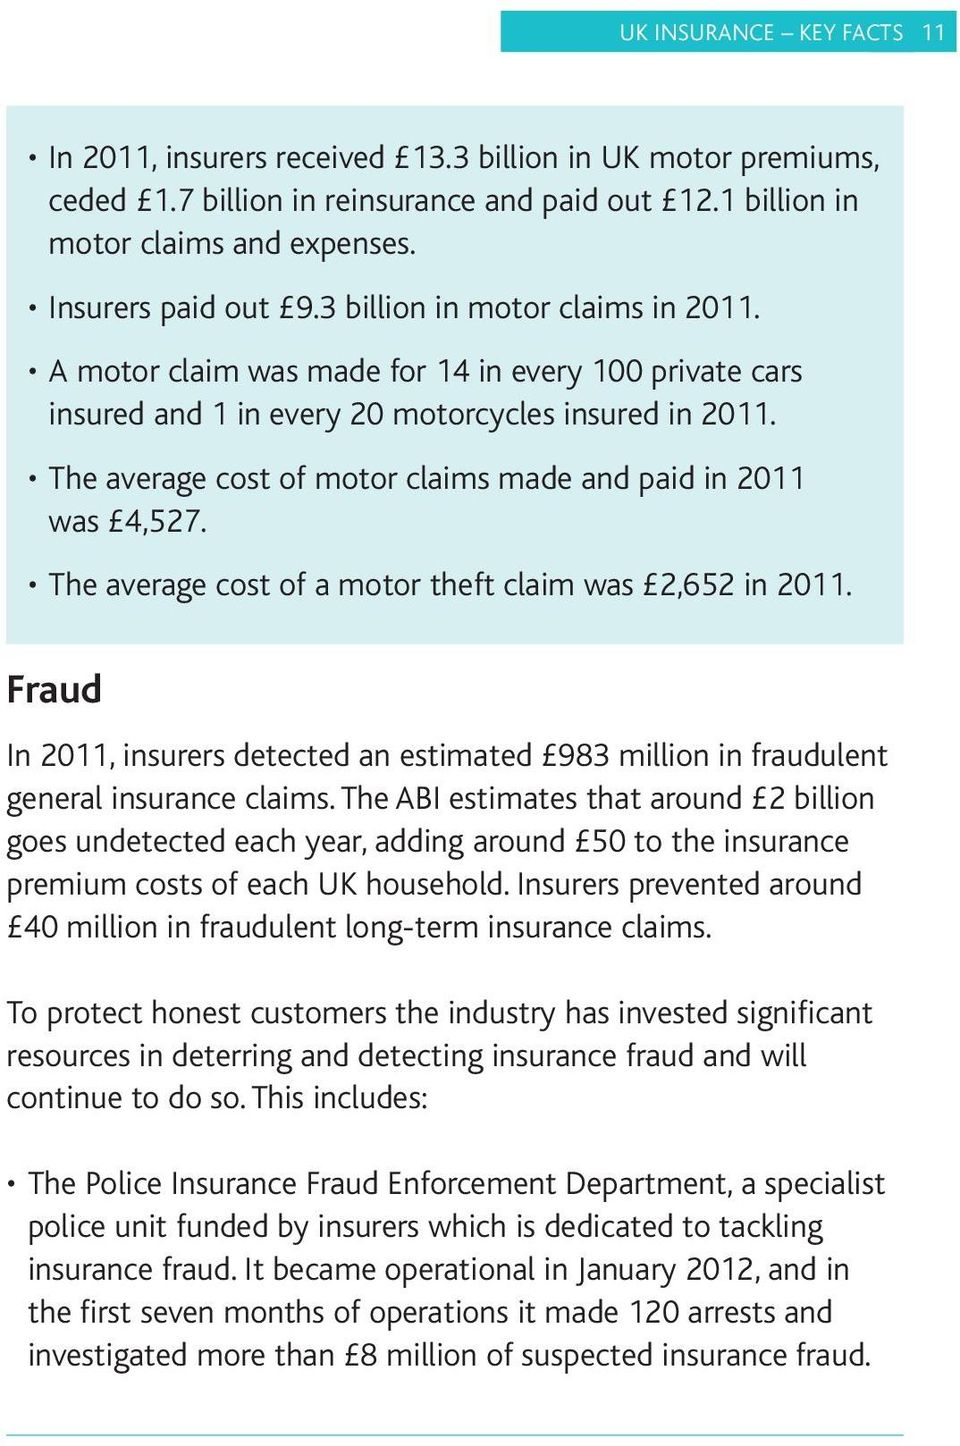 The average cost of motor claims made and paid in 2011 was 4,527. The average cost of a motor theft claim was 2,652 in 2011.